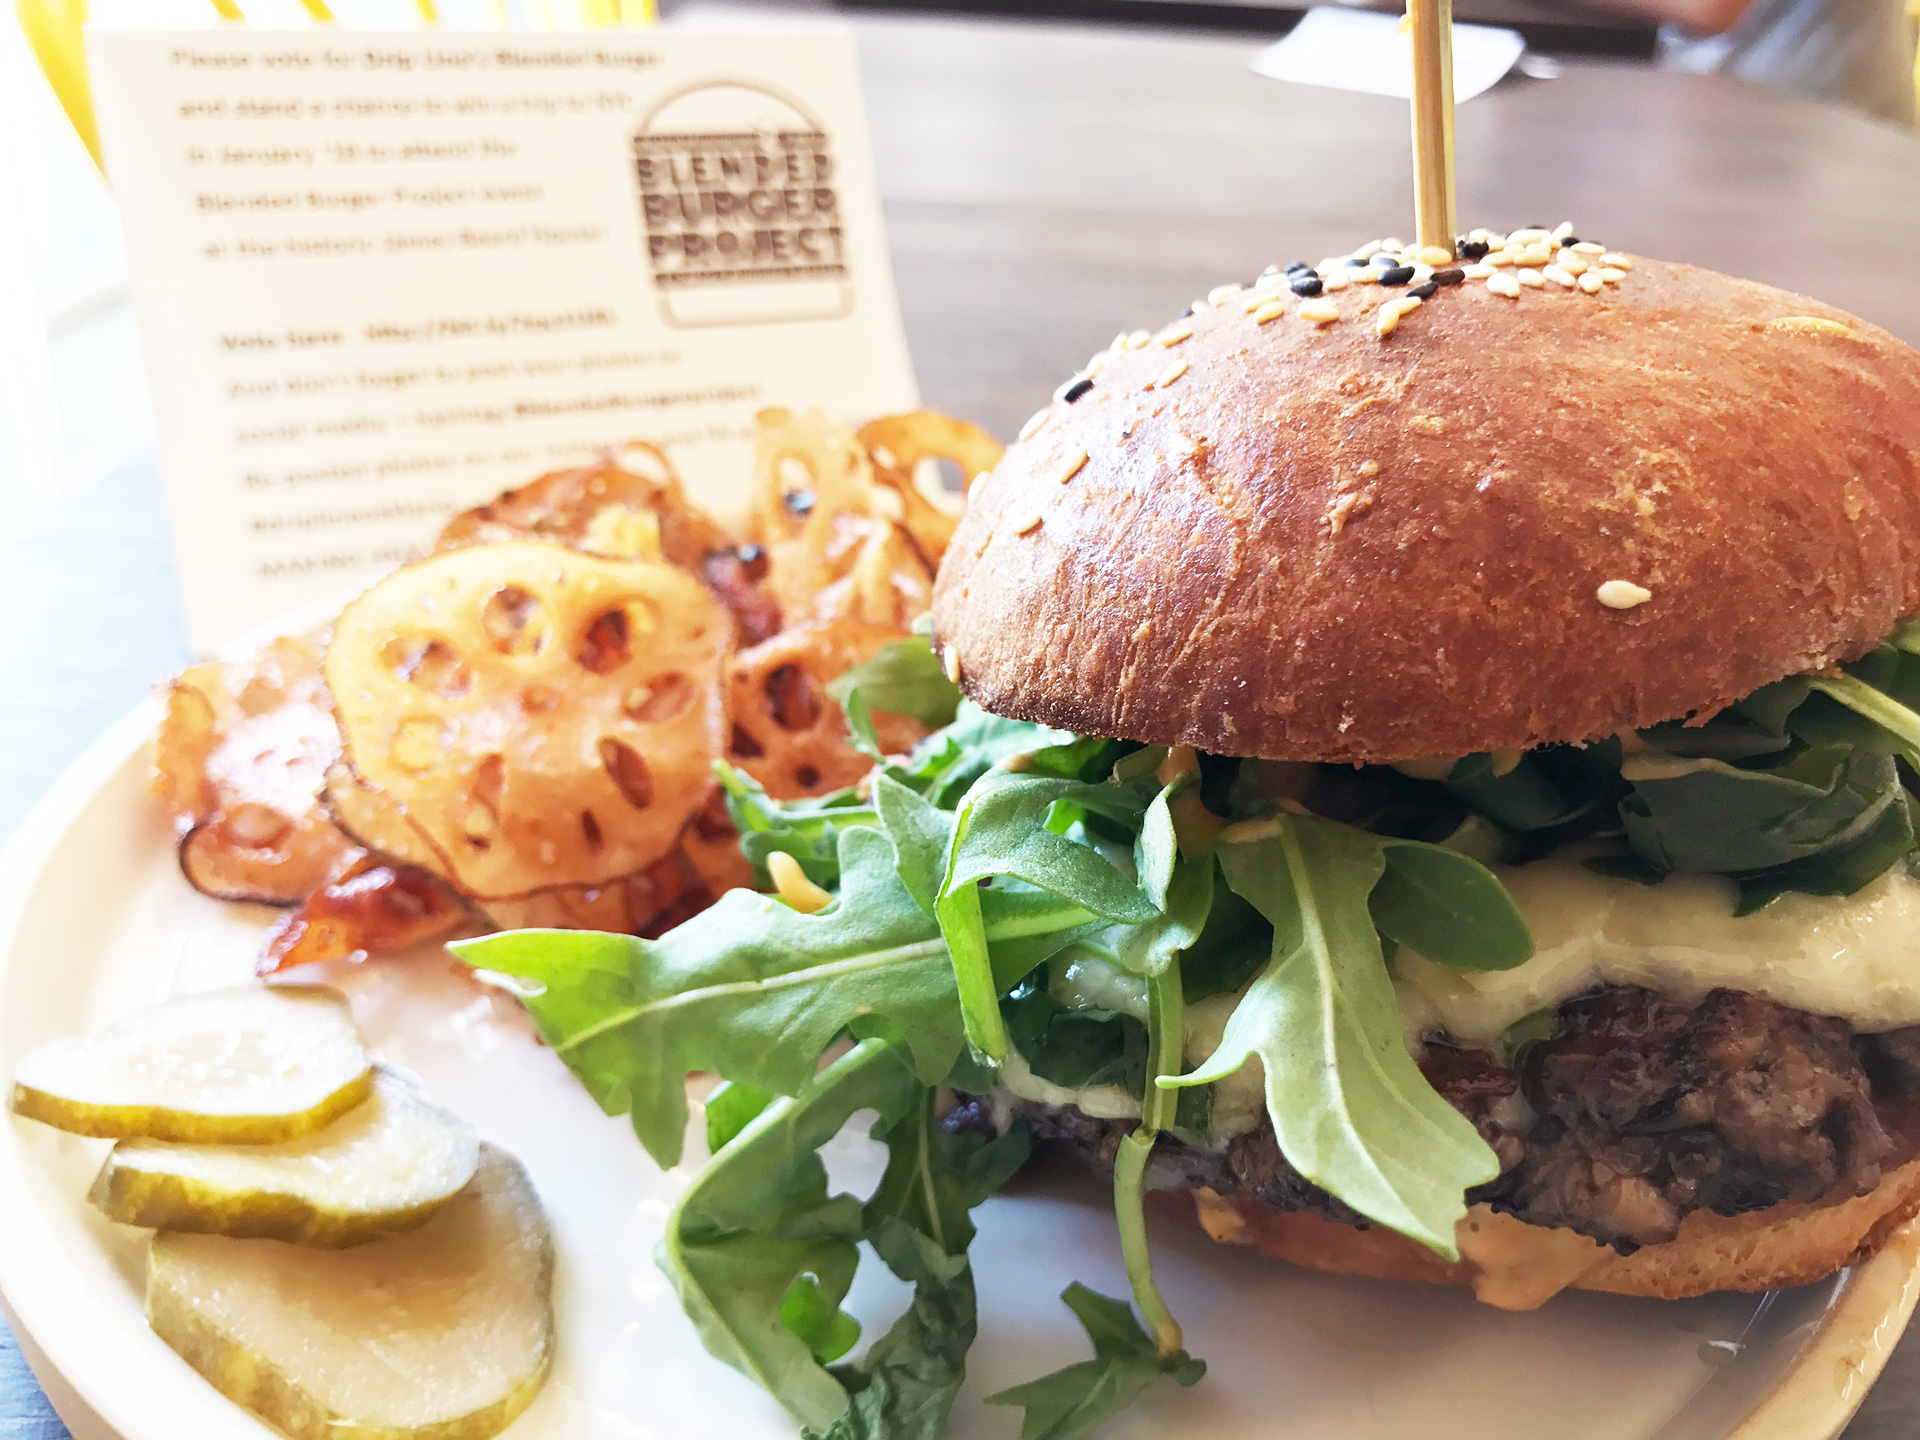 Chef Nora Dunning's blended burger with grass-fed beef and shiitake mushrooms.